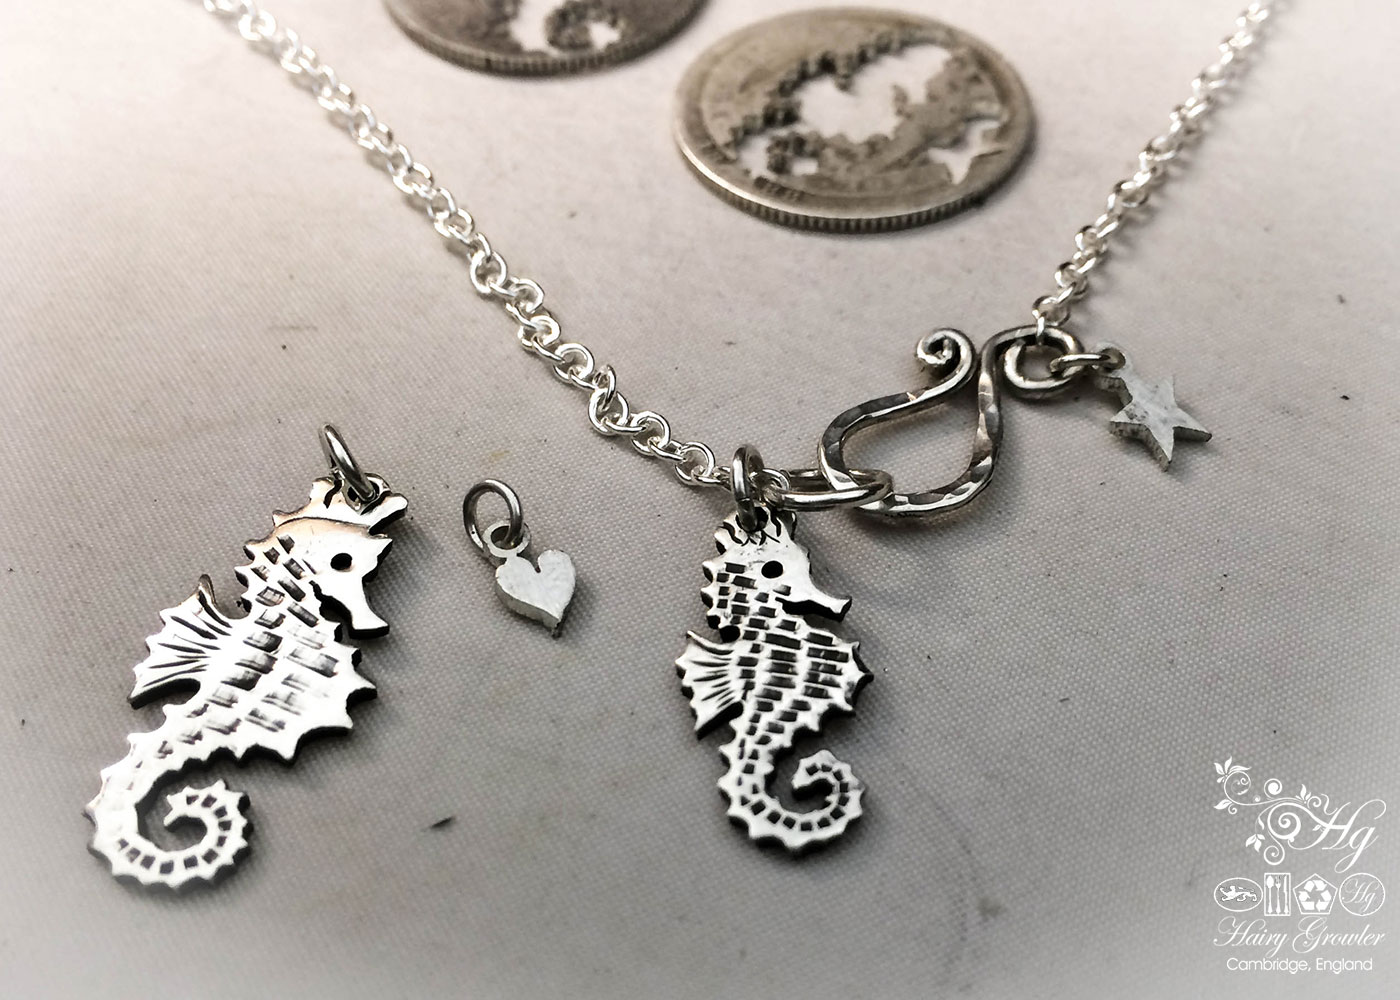 Handmade and upcycled silver shilling seahorse necklace